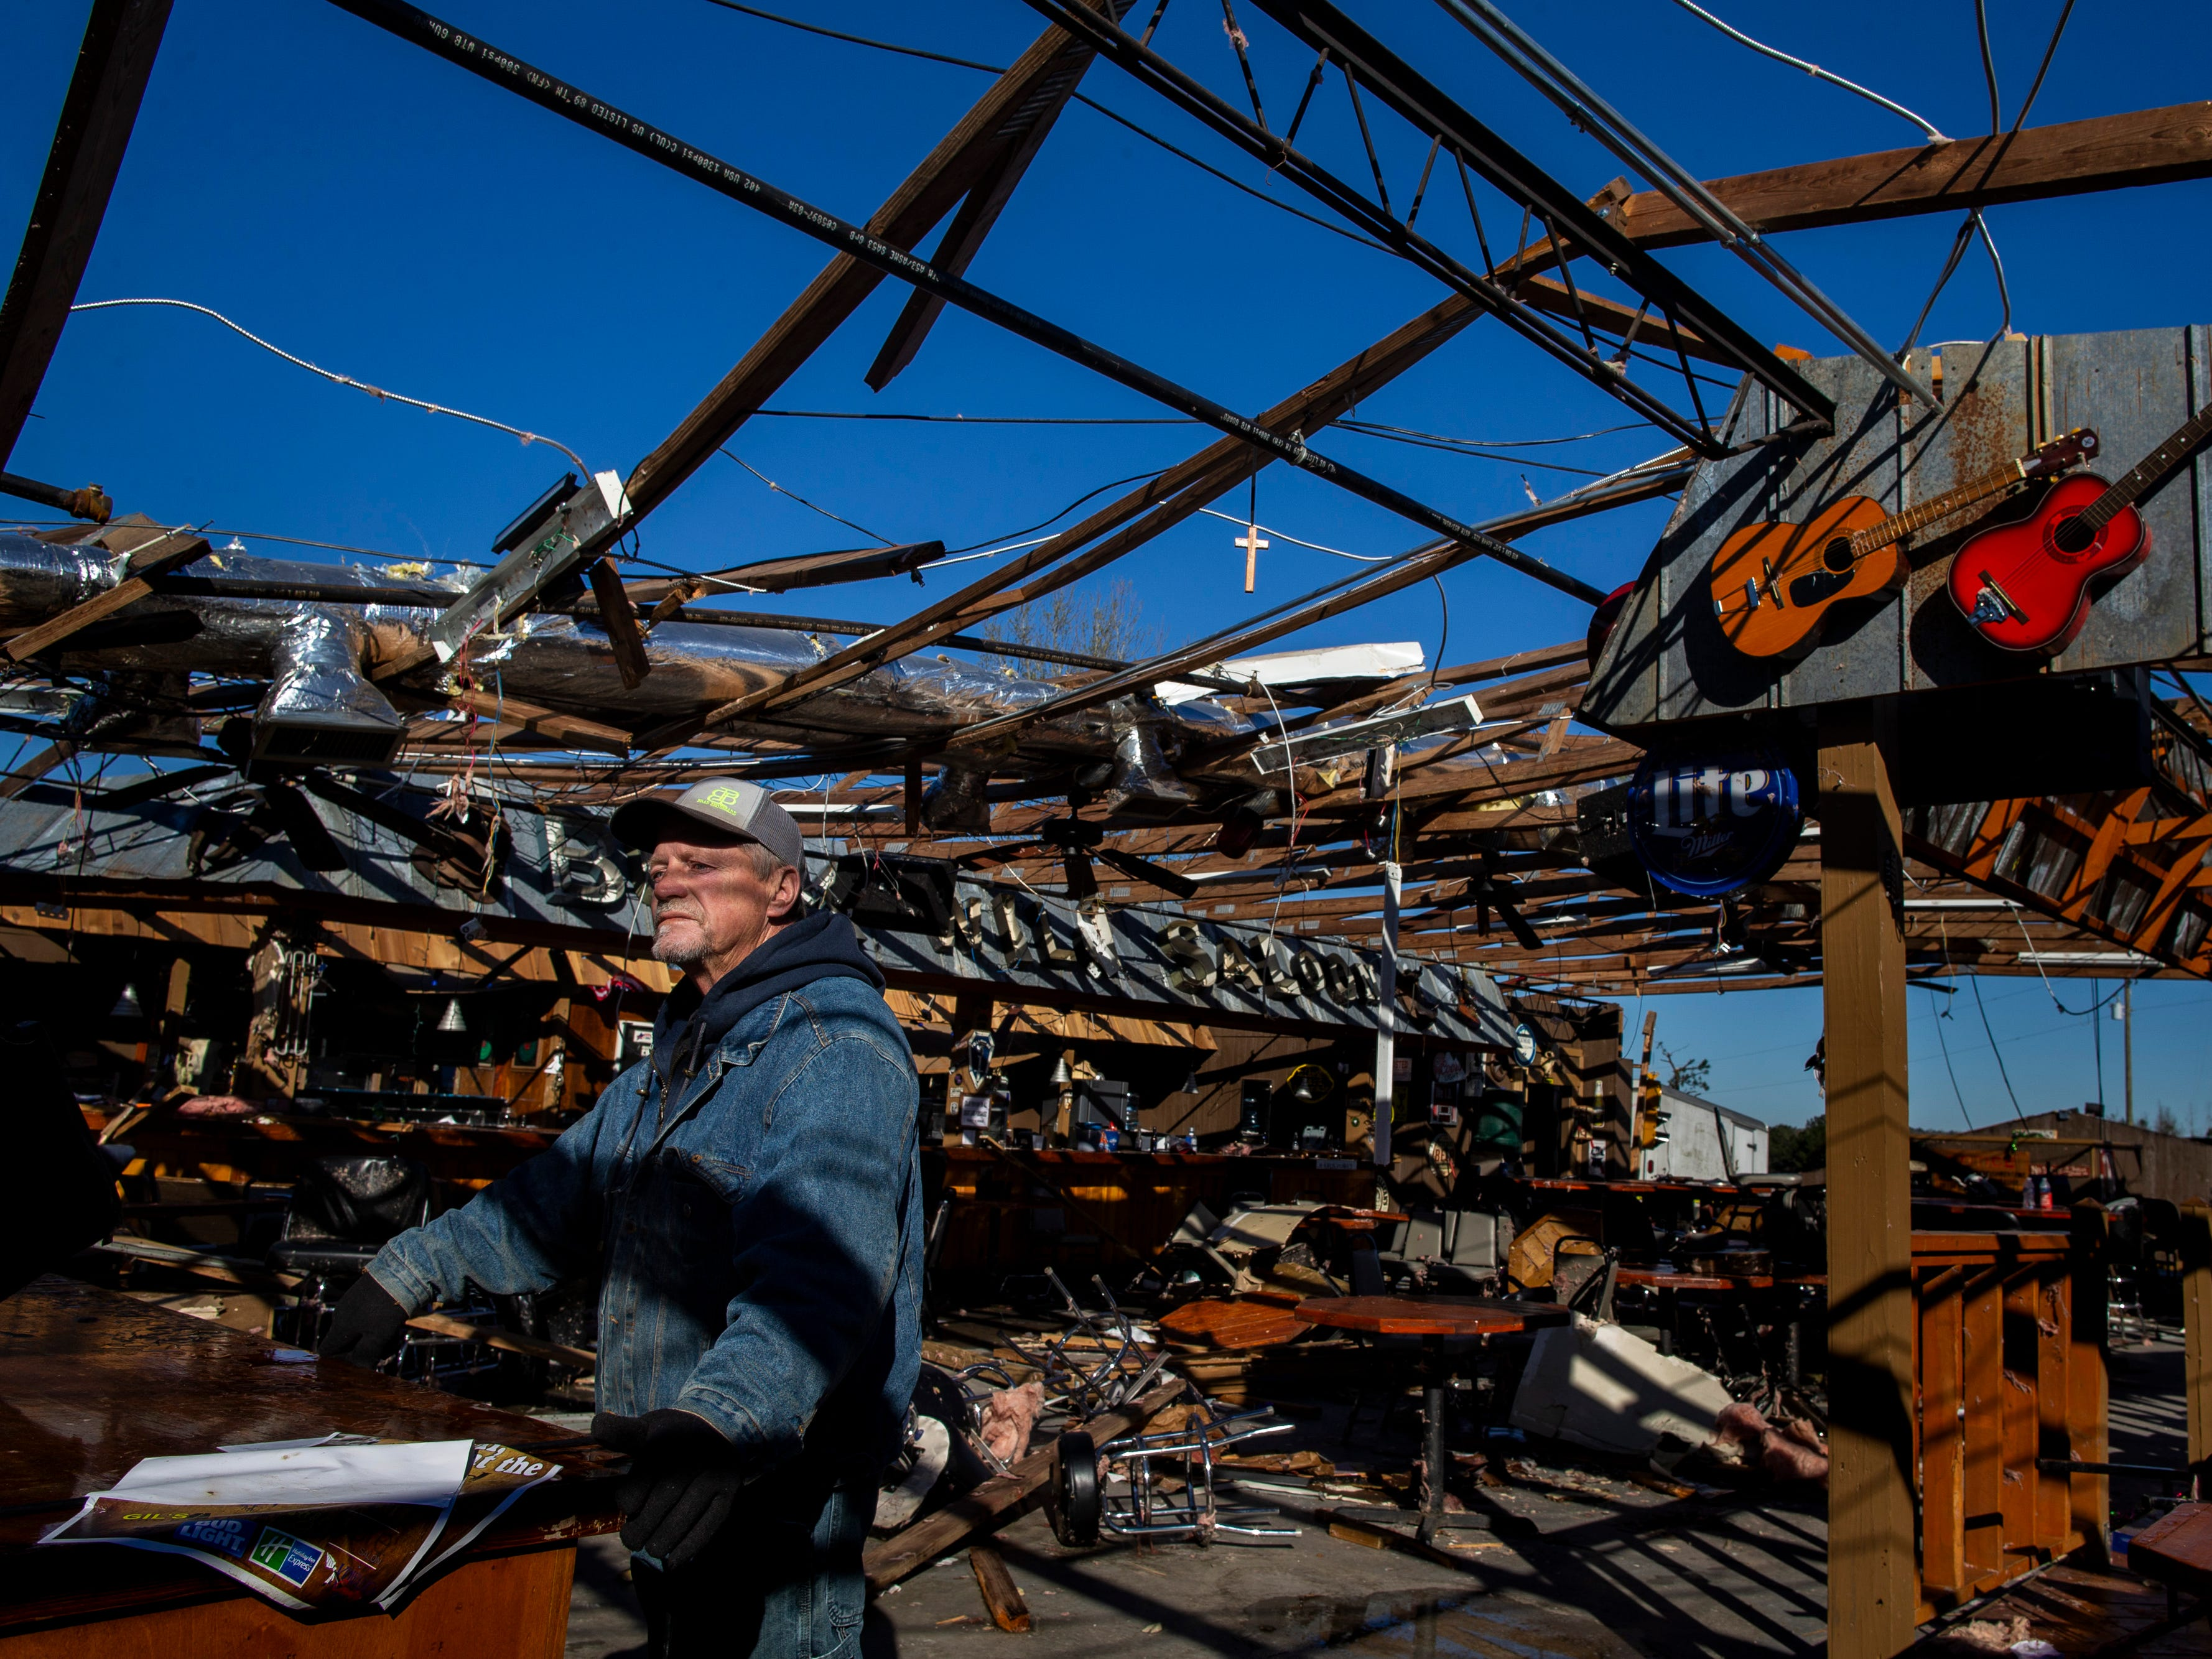 """Owner David McBride takes a break from sorting through debris in what is left of his Buck Wild Saloon country and rock bar in Smiths Station, Ala. on March 5, 2019. """"It was fun while it lasted, but it looks like it's over,"""" McBride said. McBride was in his office when the tornado warnings went off and made it next door in his truck before the tornado struck. """"The gas station owner ran out and jumped in and my entire front windshield blew out."""""""